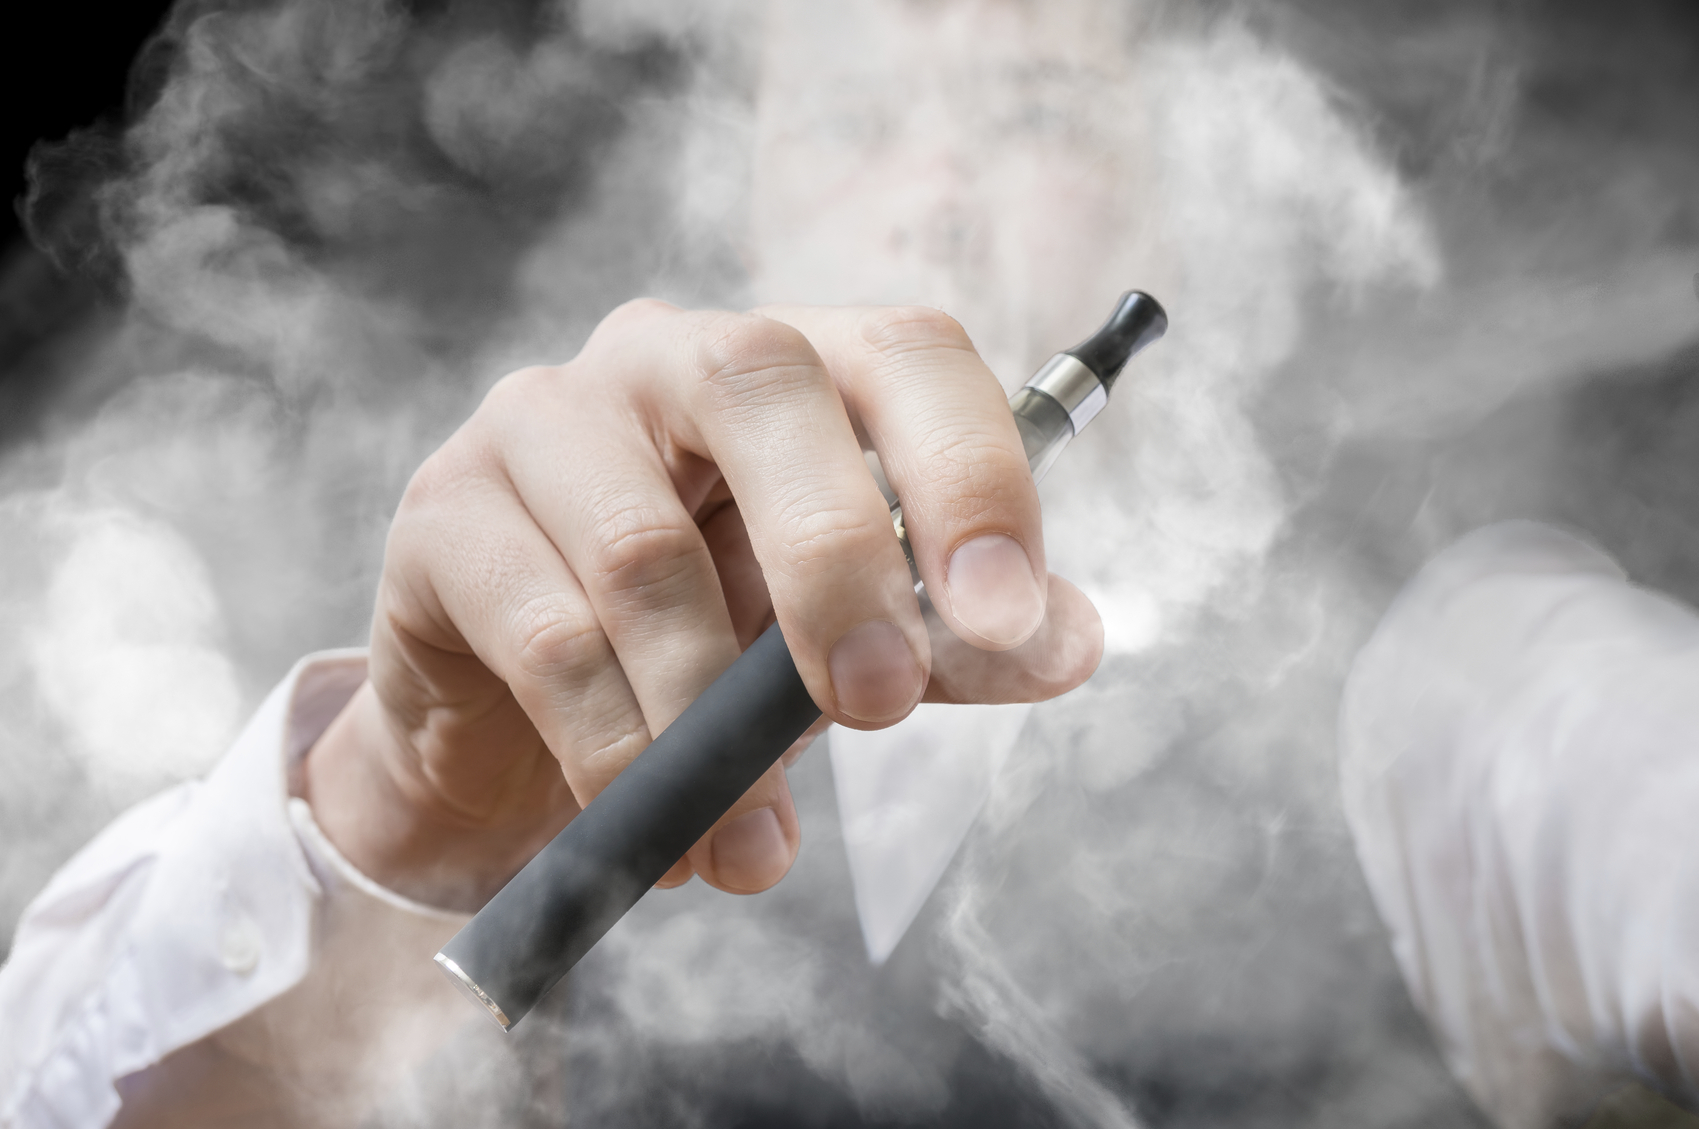 <b>E</b>-cigarettes: Good news, bad news - Harvard Health Blog - Harvard ...